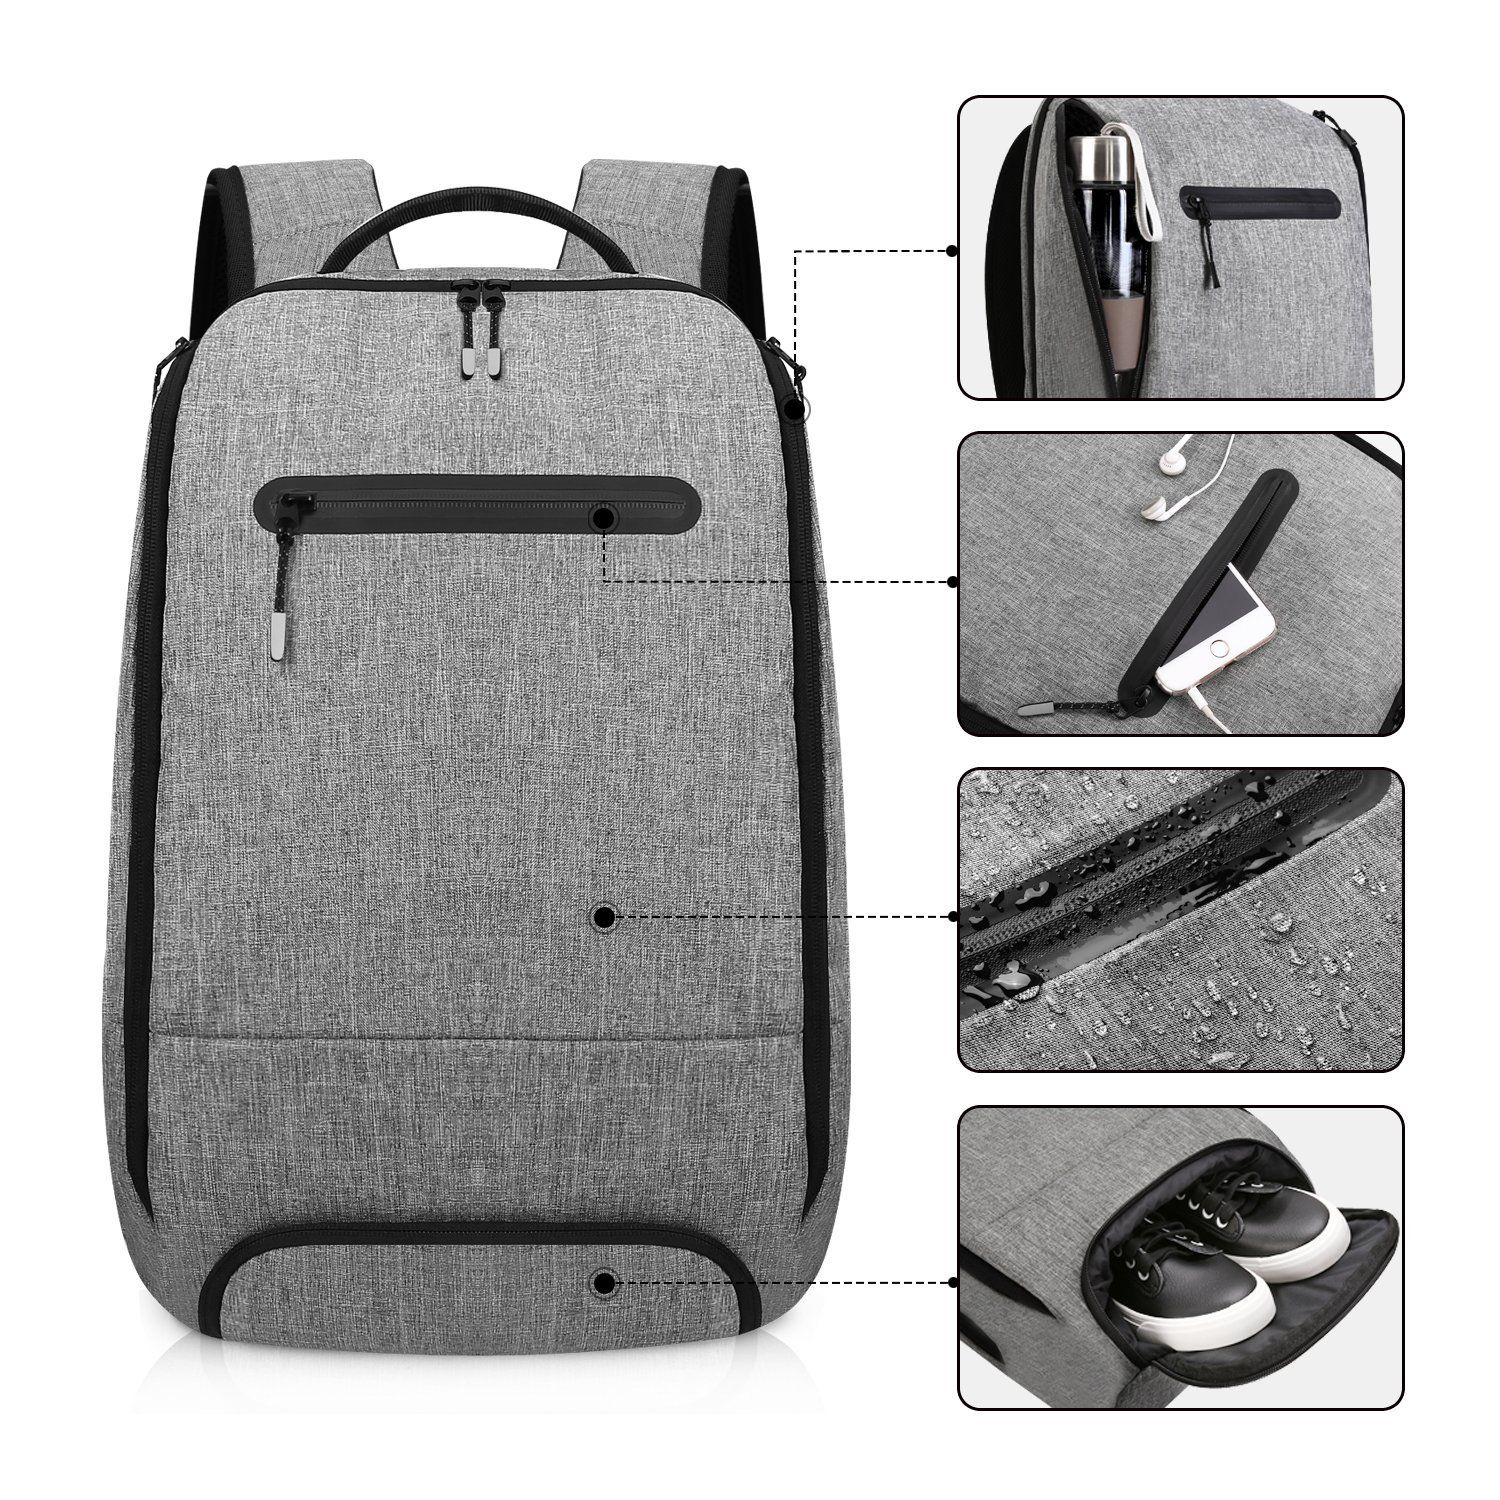 Slim Travel Backpack with Laptop Compartment for Men and Women Water Resistant